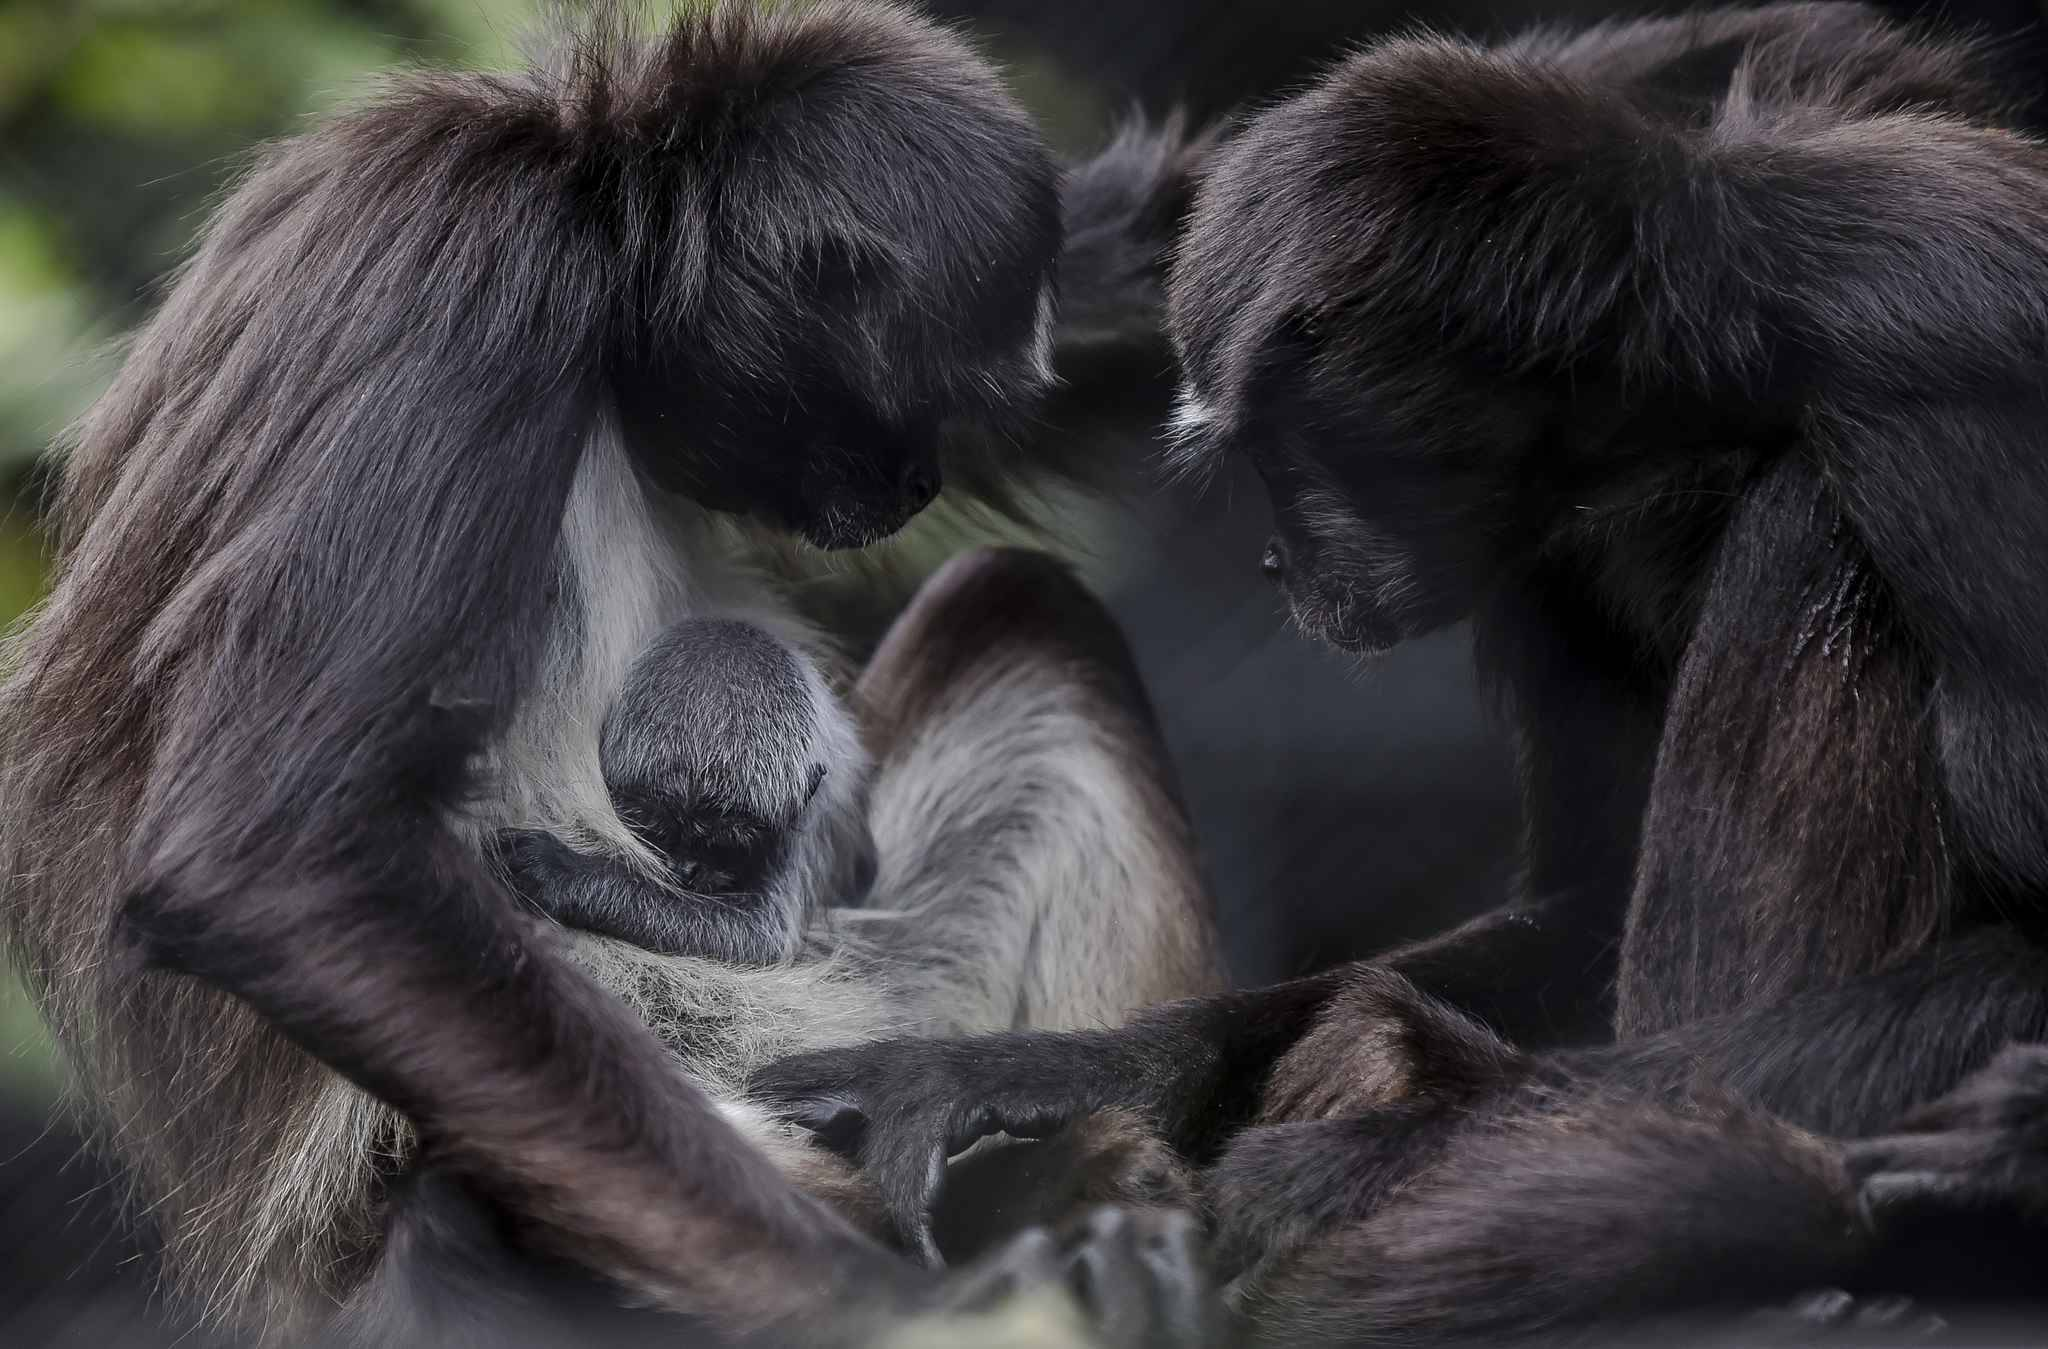 A spider monkey cub (Ateles hybrids), born two days ago, and its mother are pictured, at Santa Fe zoo, in Medellin, Antioquia department, Colombia on September 13, 2018.   The spider monkey is an extintion danger species.